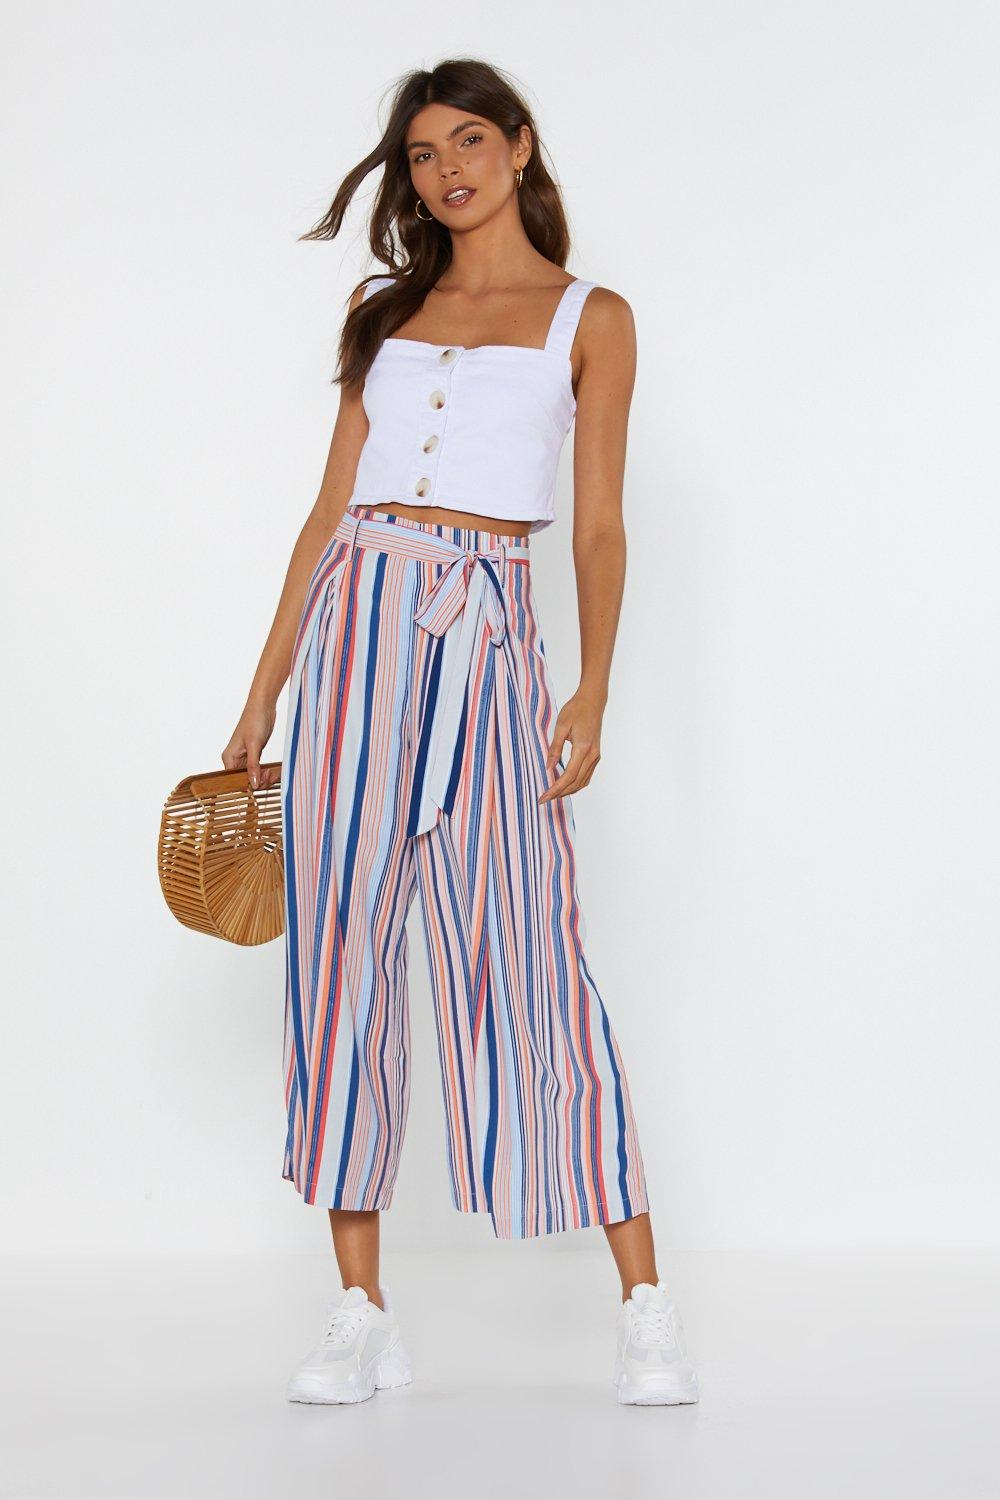 291a1a44ad1 Mind Your Manners Striped Culottes. Hover to zoom